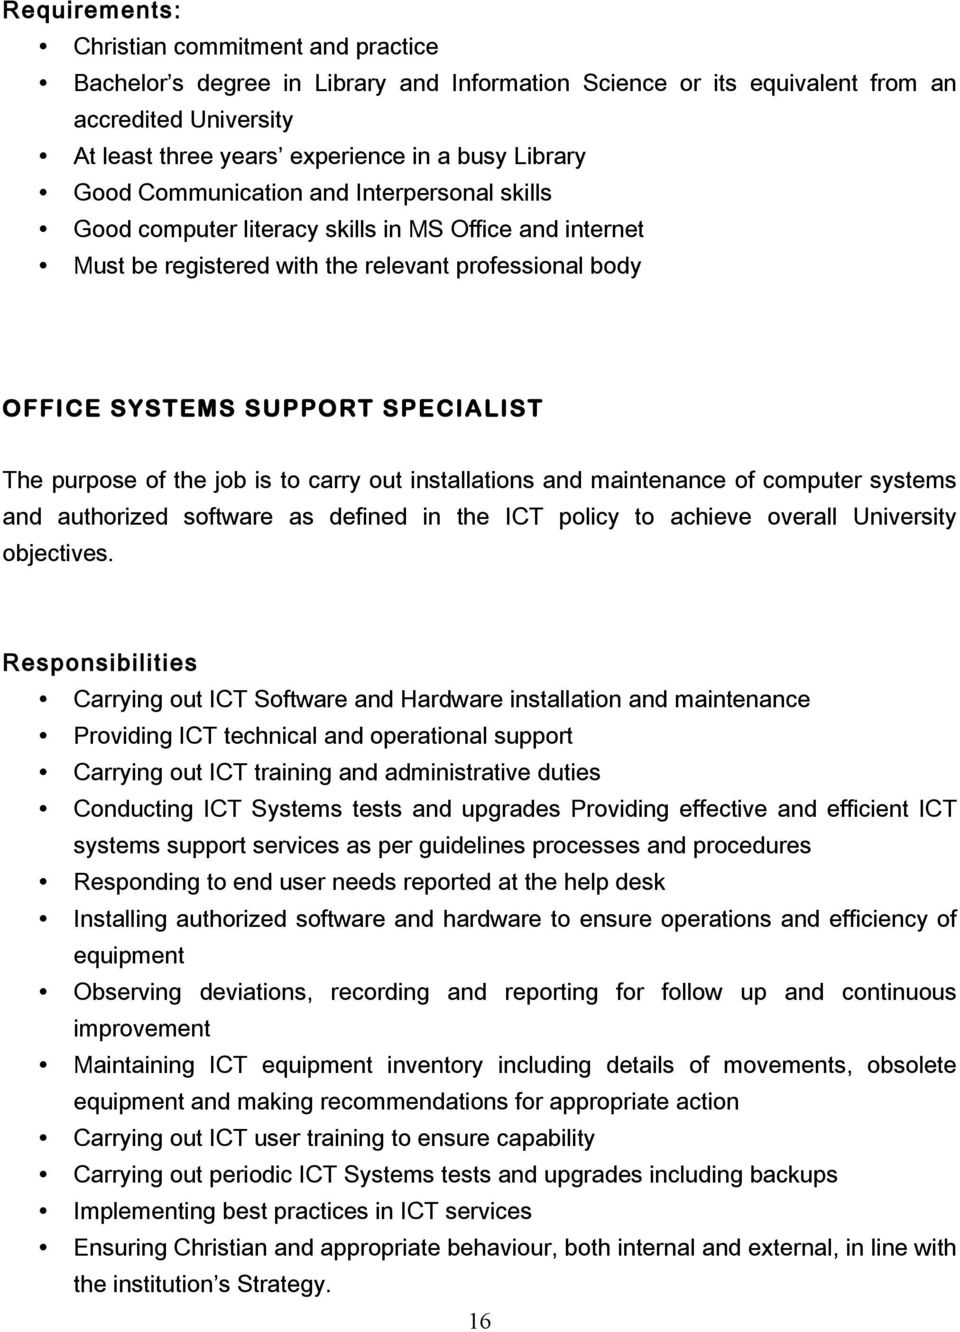 carry out installations and maintenance of computer systems and authorized software as defined in the ICT policy to achieve overall University objectives.